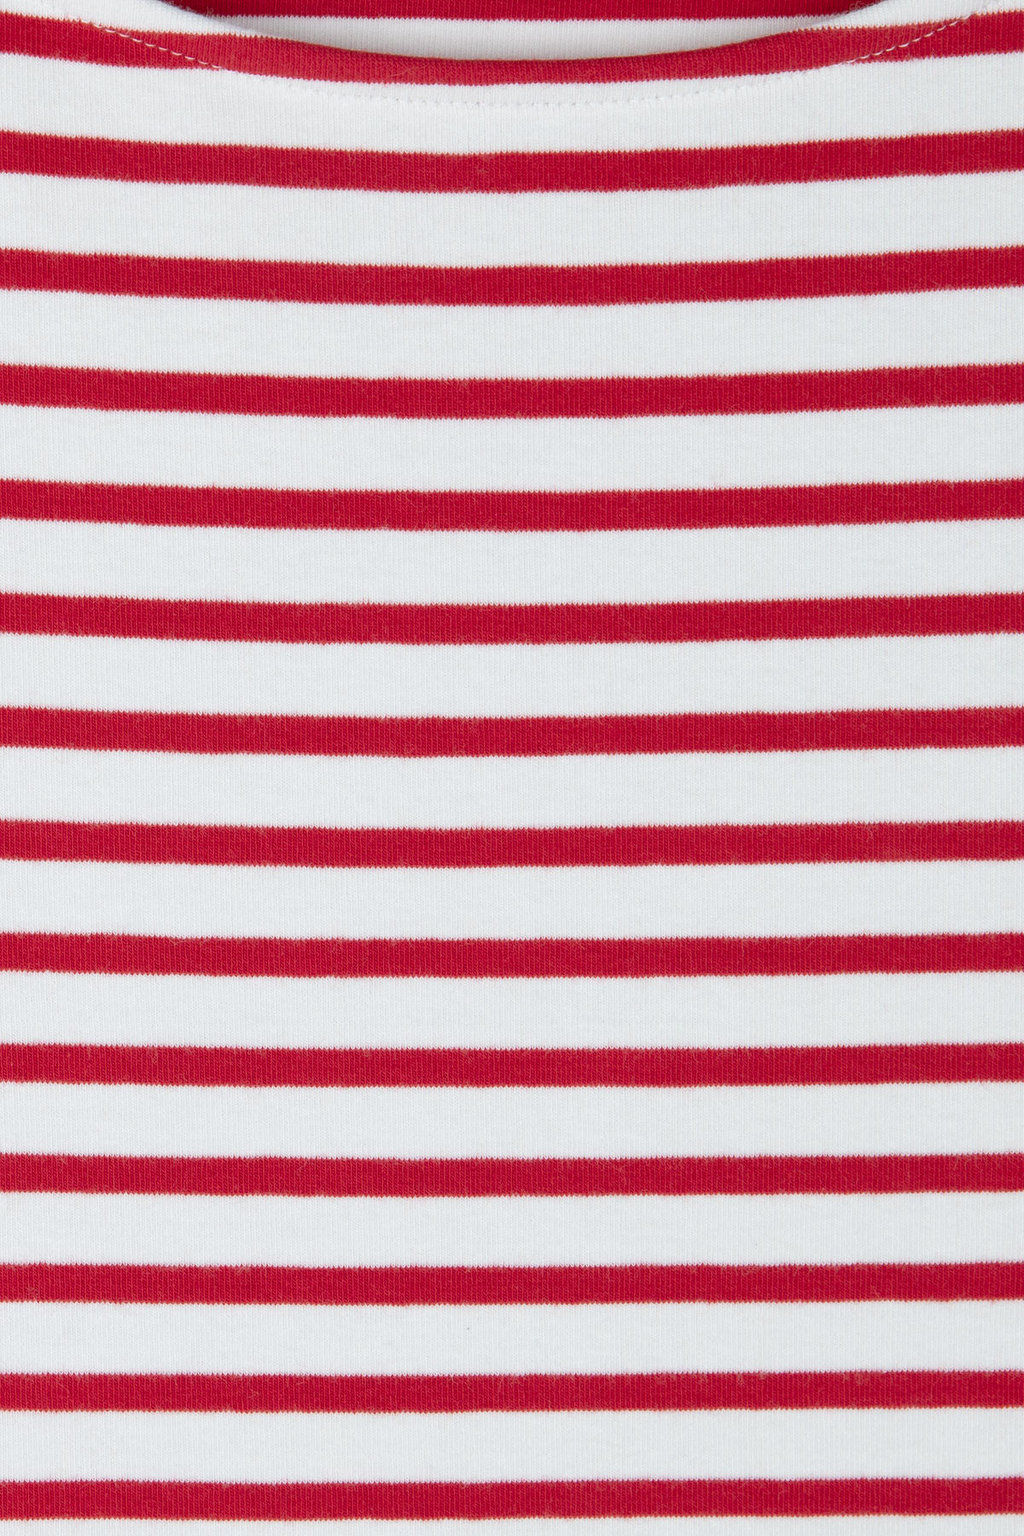 TShirt 33442019 Red Stripe 12